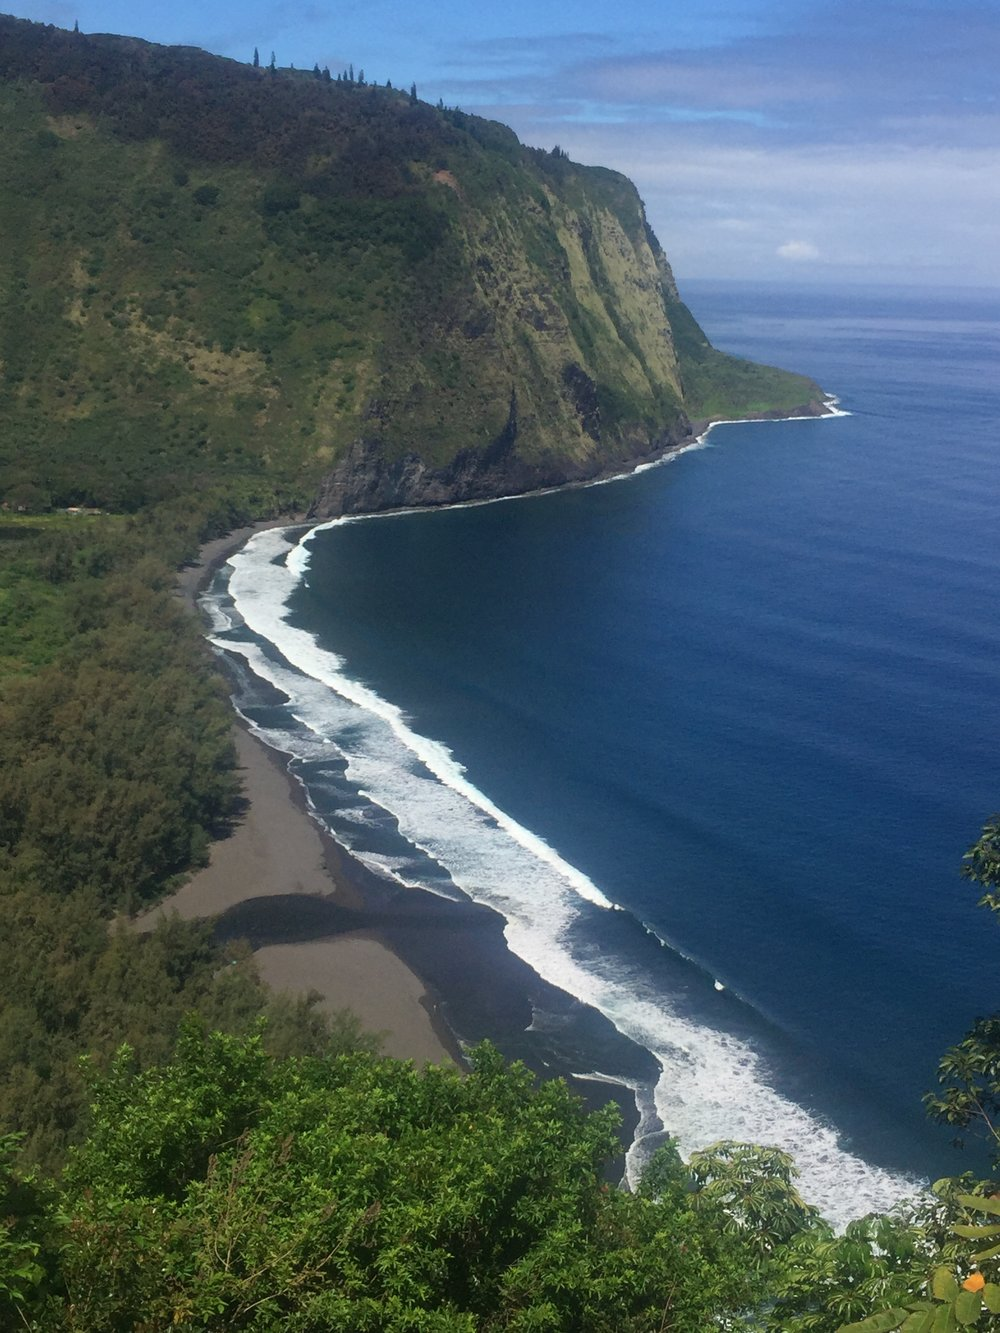 Waipio Valley - we hiked down and some very kind soul drove us up the 1,200 foot climb back.